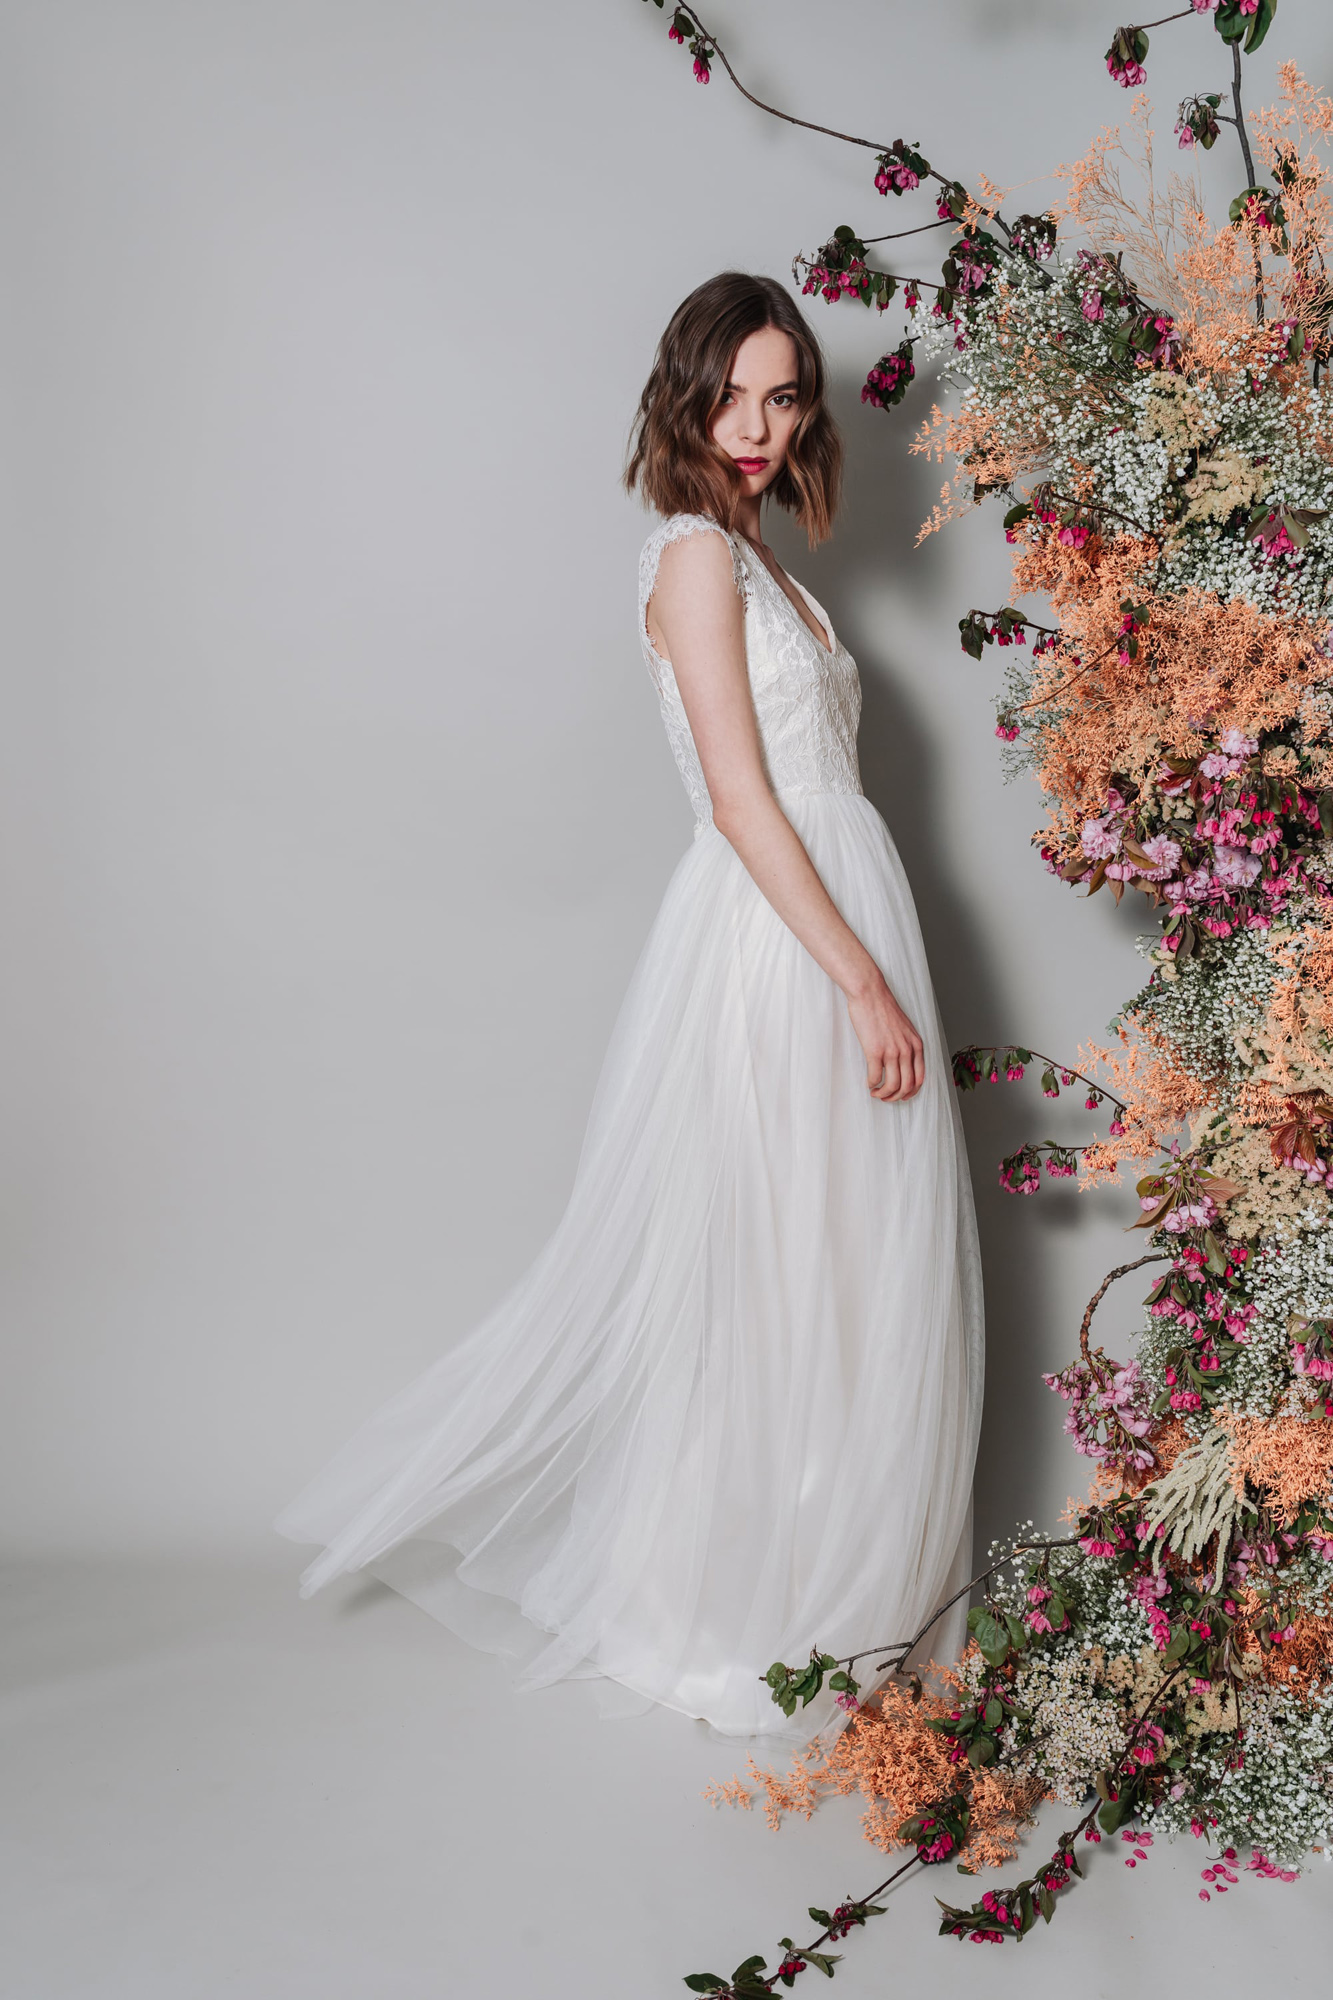 Kate-Beaumont-Sheffield-Mimosa-Lace-Tulle-Bohemian-Wedding-Gown-7.jpg